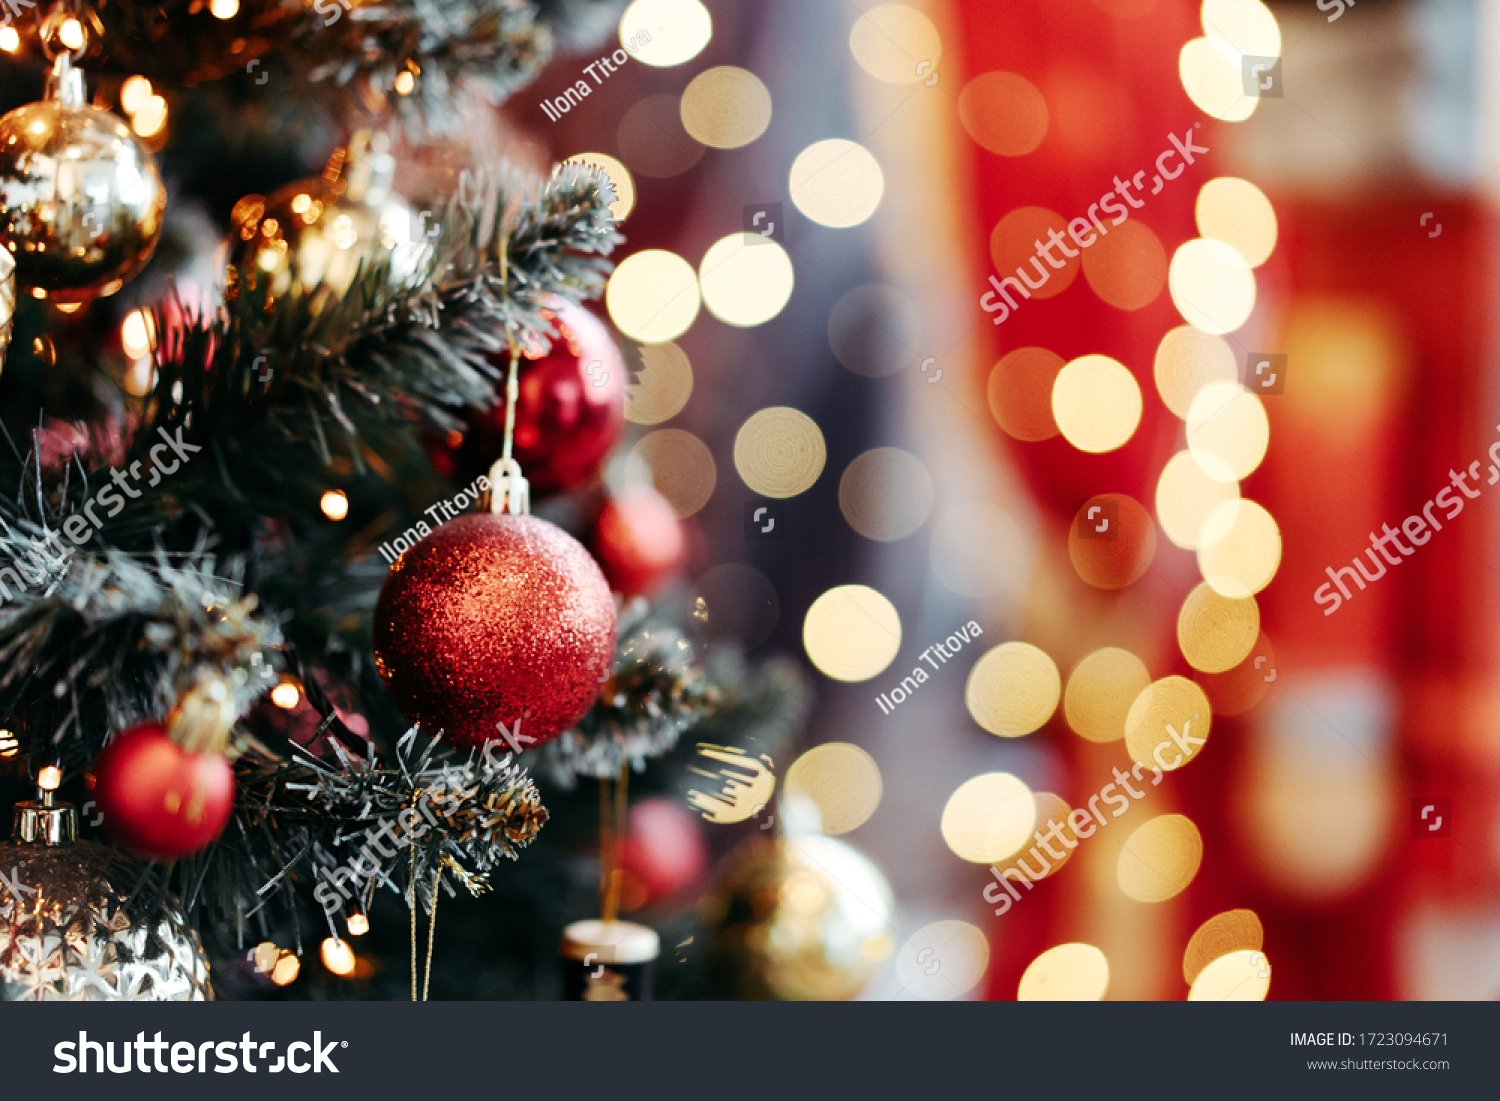 Close up of balls on christmas tree. Bokeh garlands in the background. New Year concept. #1723094671